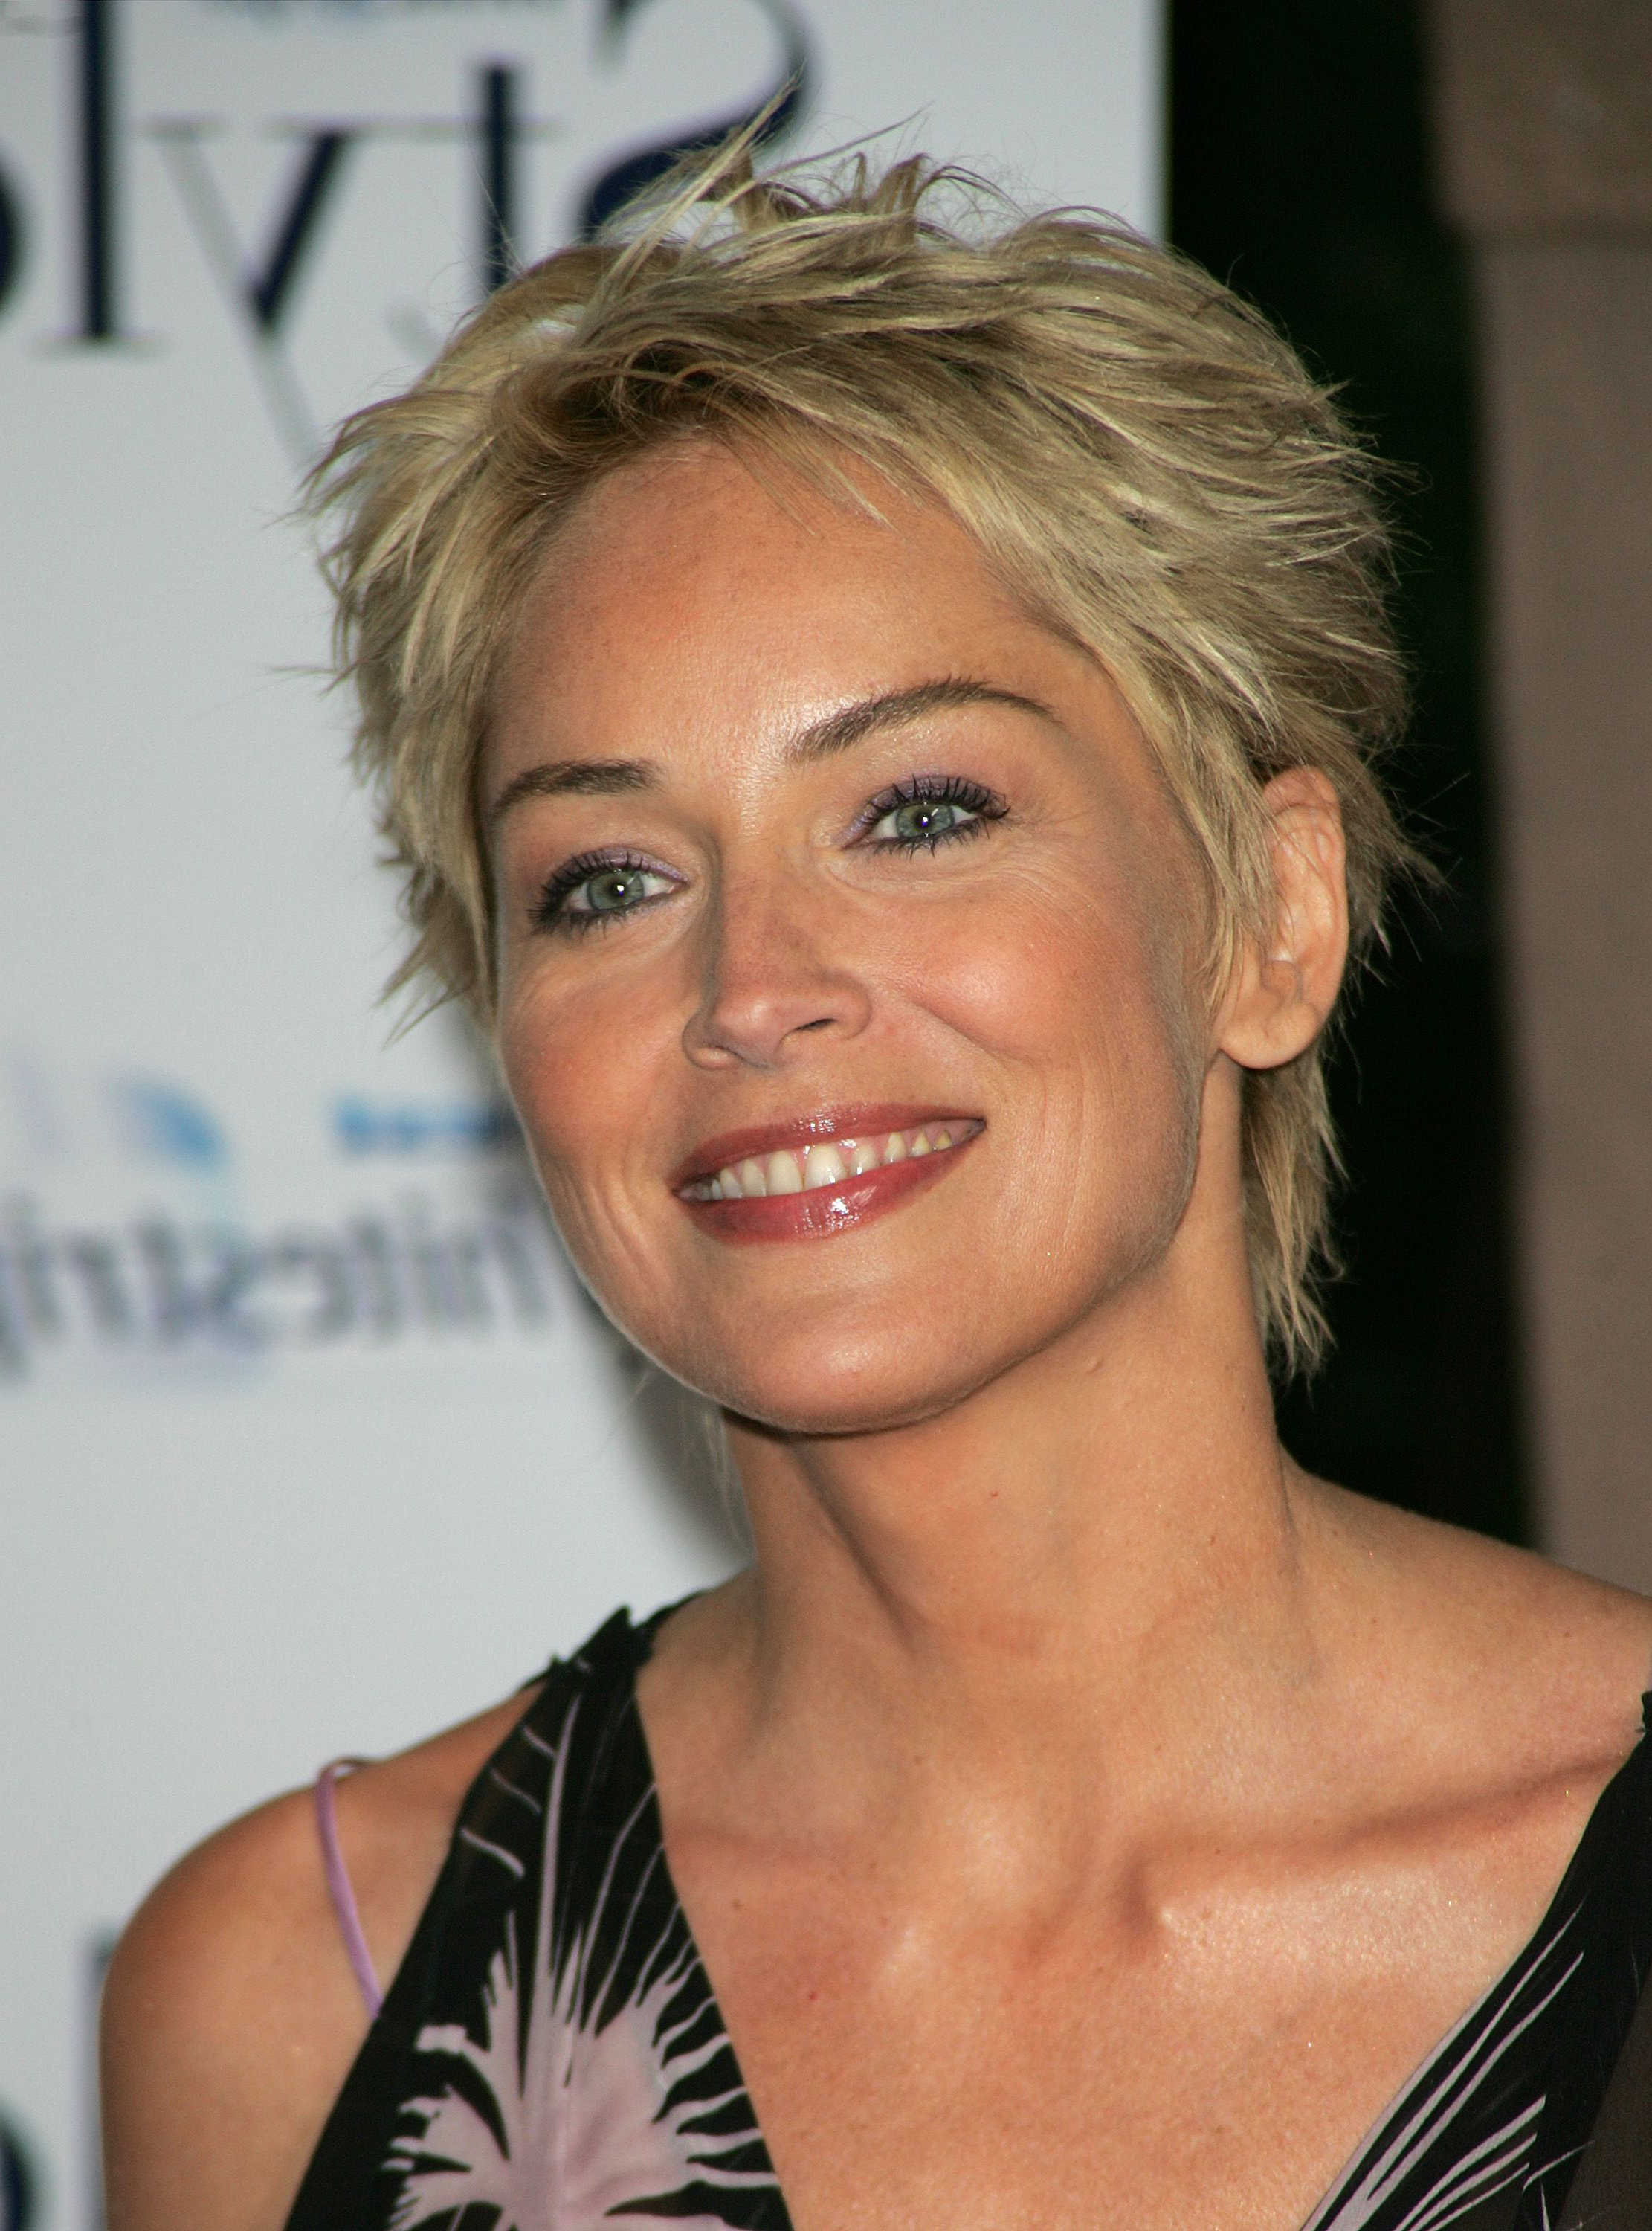 2017 Sharon Stone Medium Haircuts Regarding Sharon Stone Short Hairstyles – Hairstyle For Women & Man (View 1 of 20)